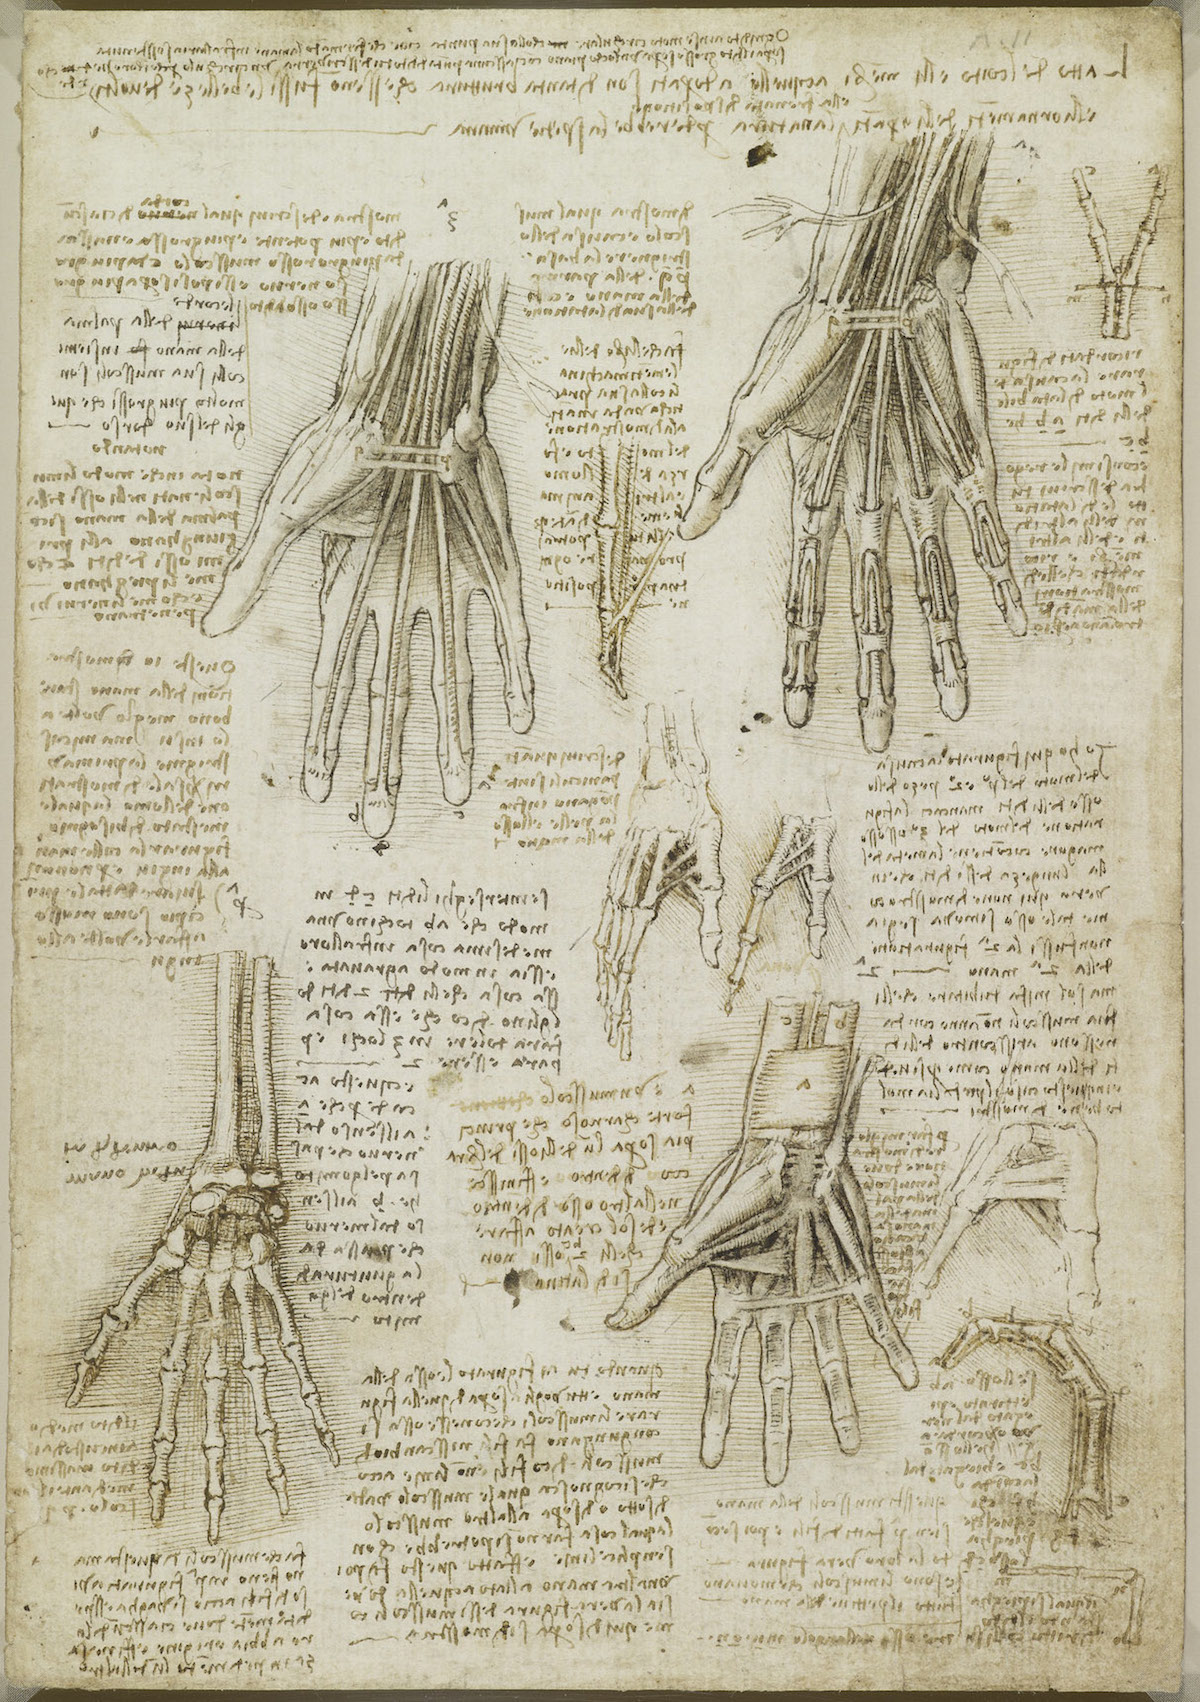 da vinci hands anatomical